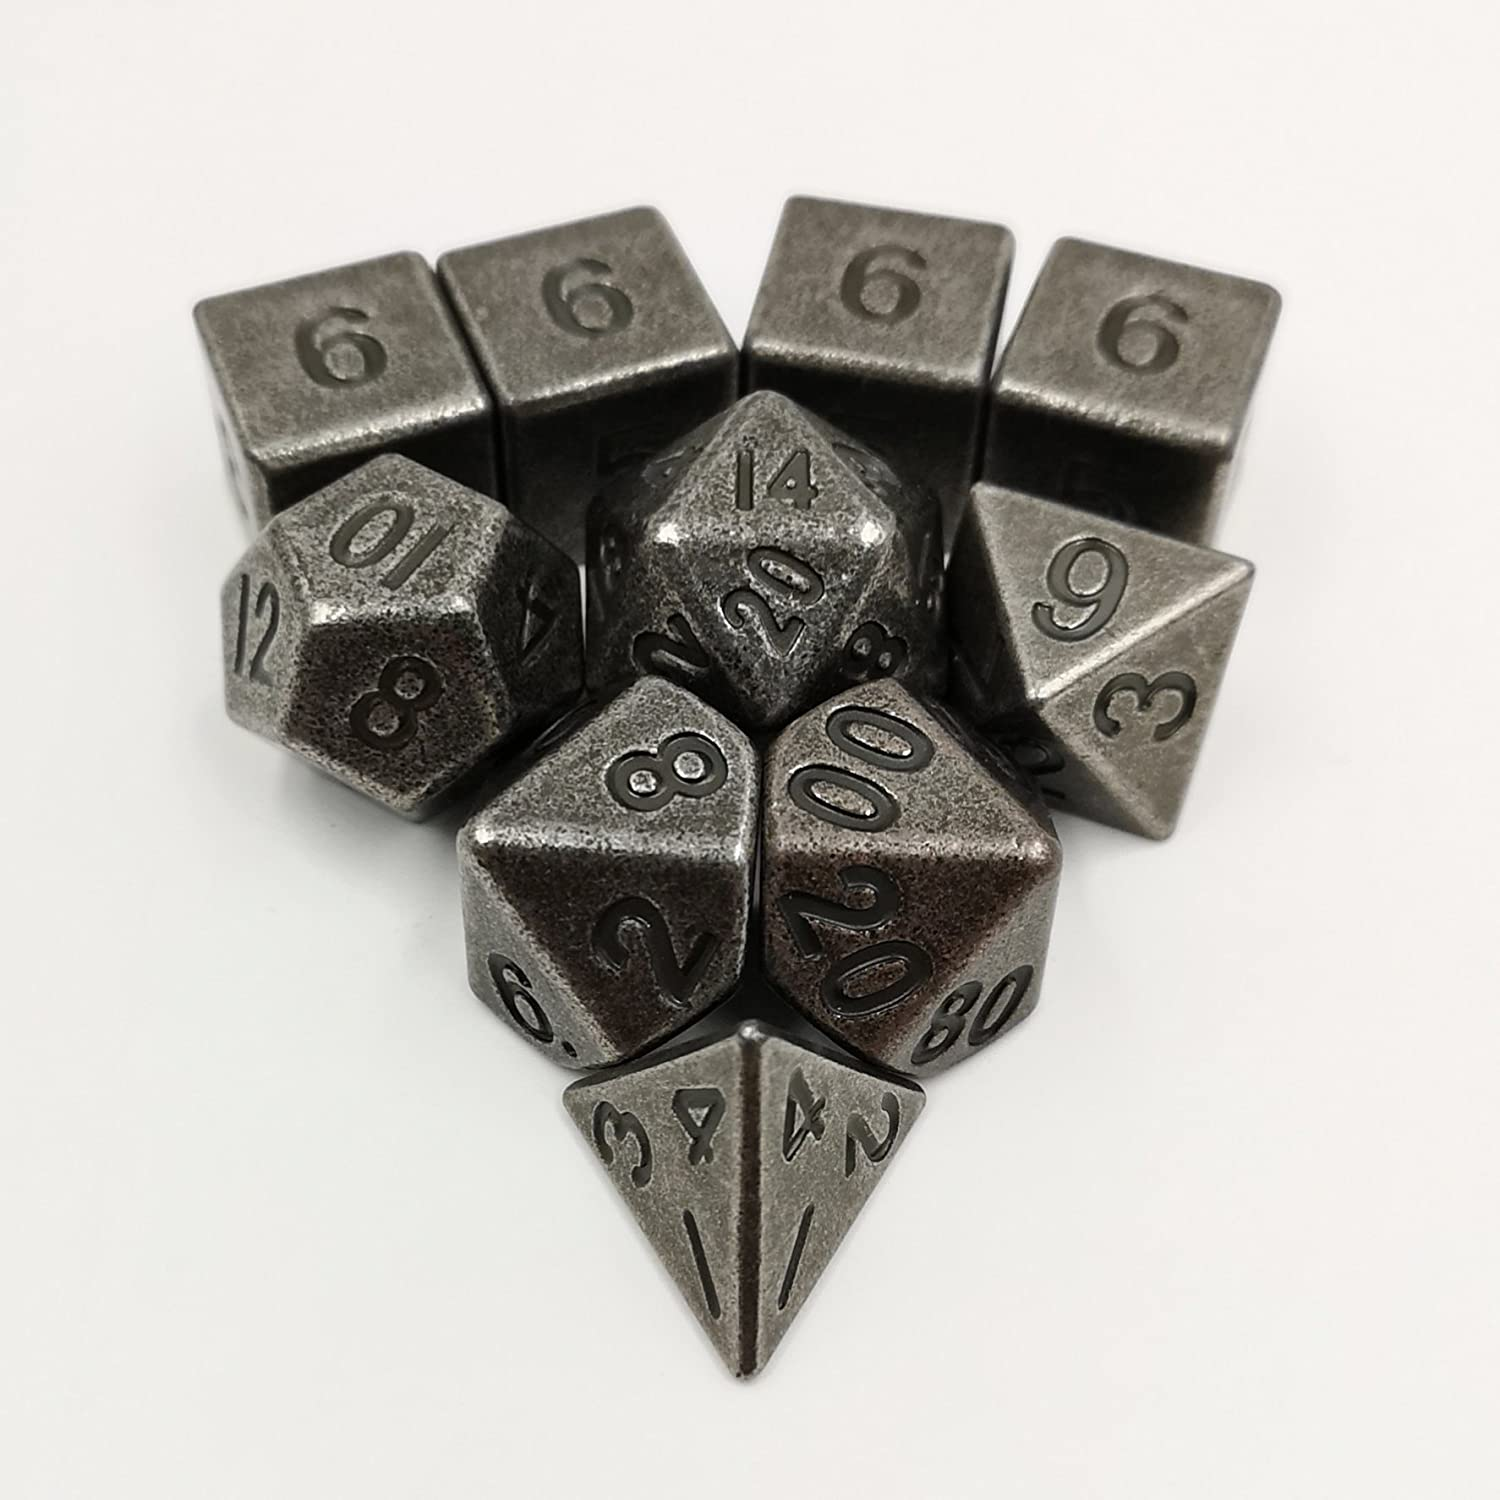 Ancient Metal Dice Satz Standard 7 + 3D6'S für Roleplaying Games